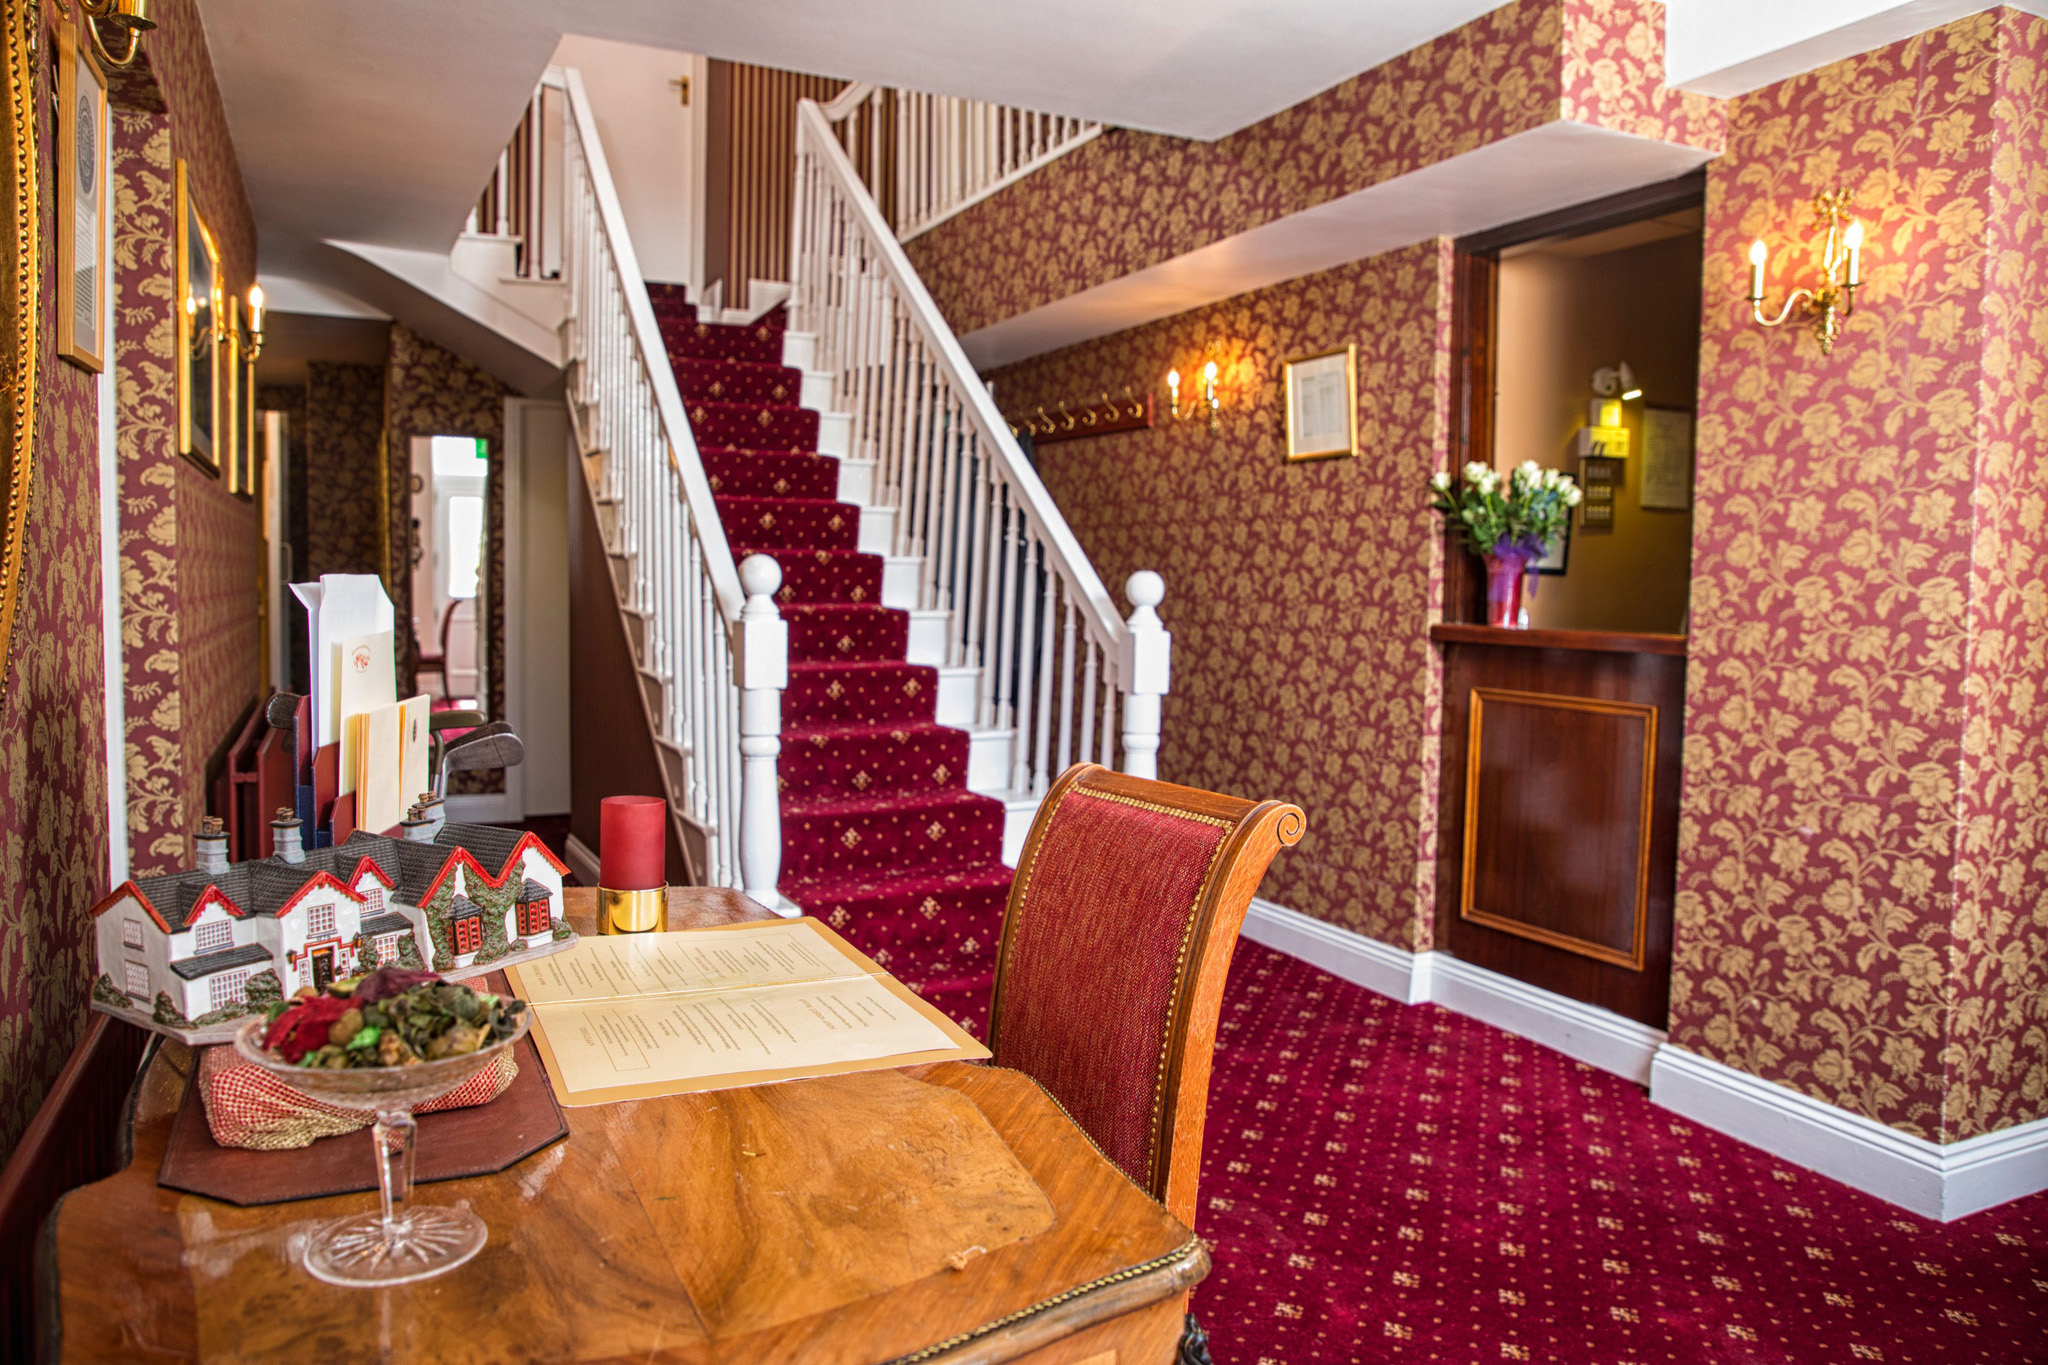 Killeen House Hotel | Aghadoe , Lakes of Killarney, Co Kerry | Photos 15